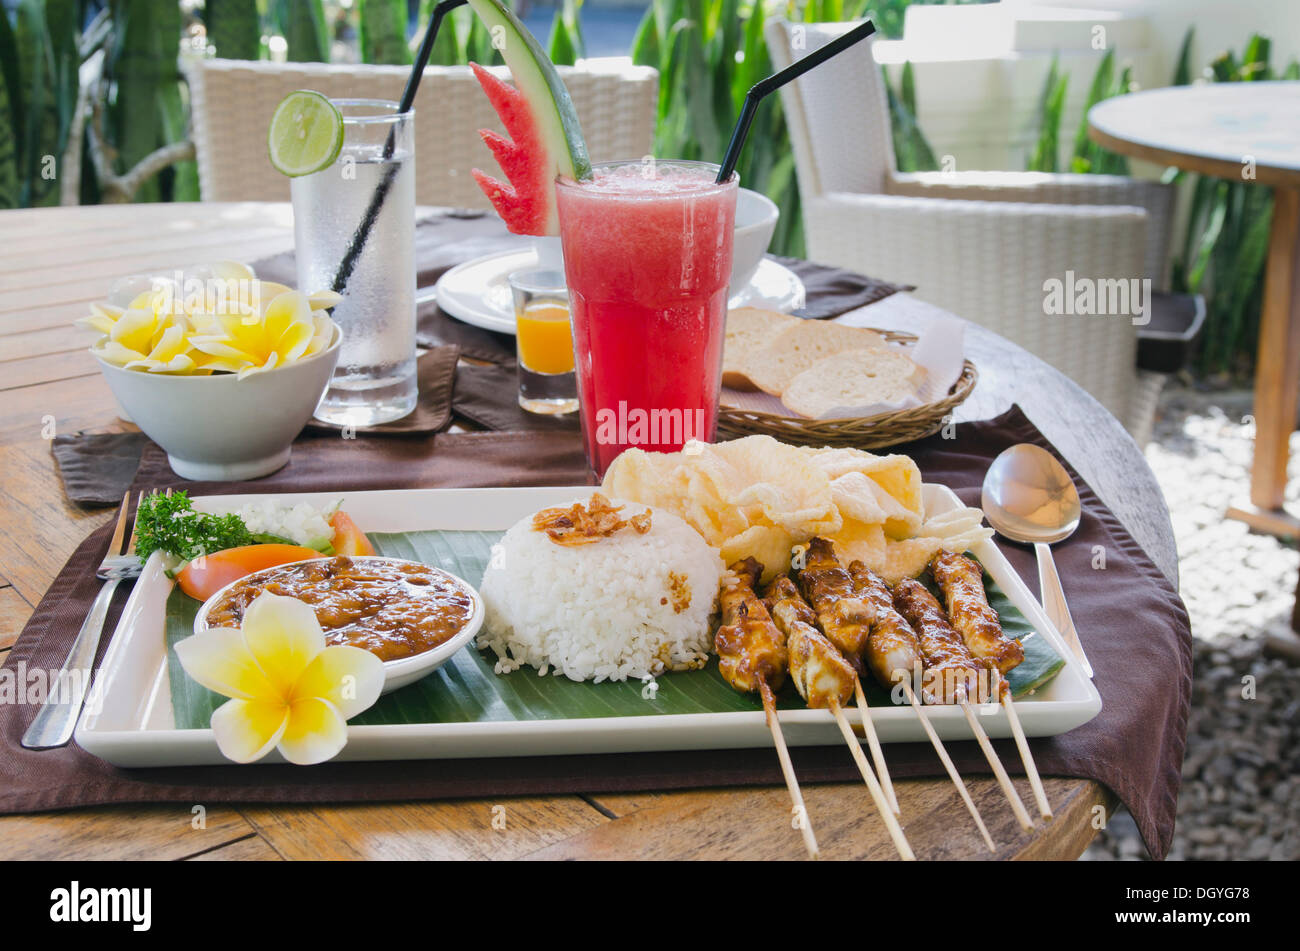 chicken satay, chicken skewers with rice, indonesian cuisine, at a